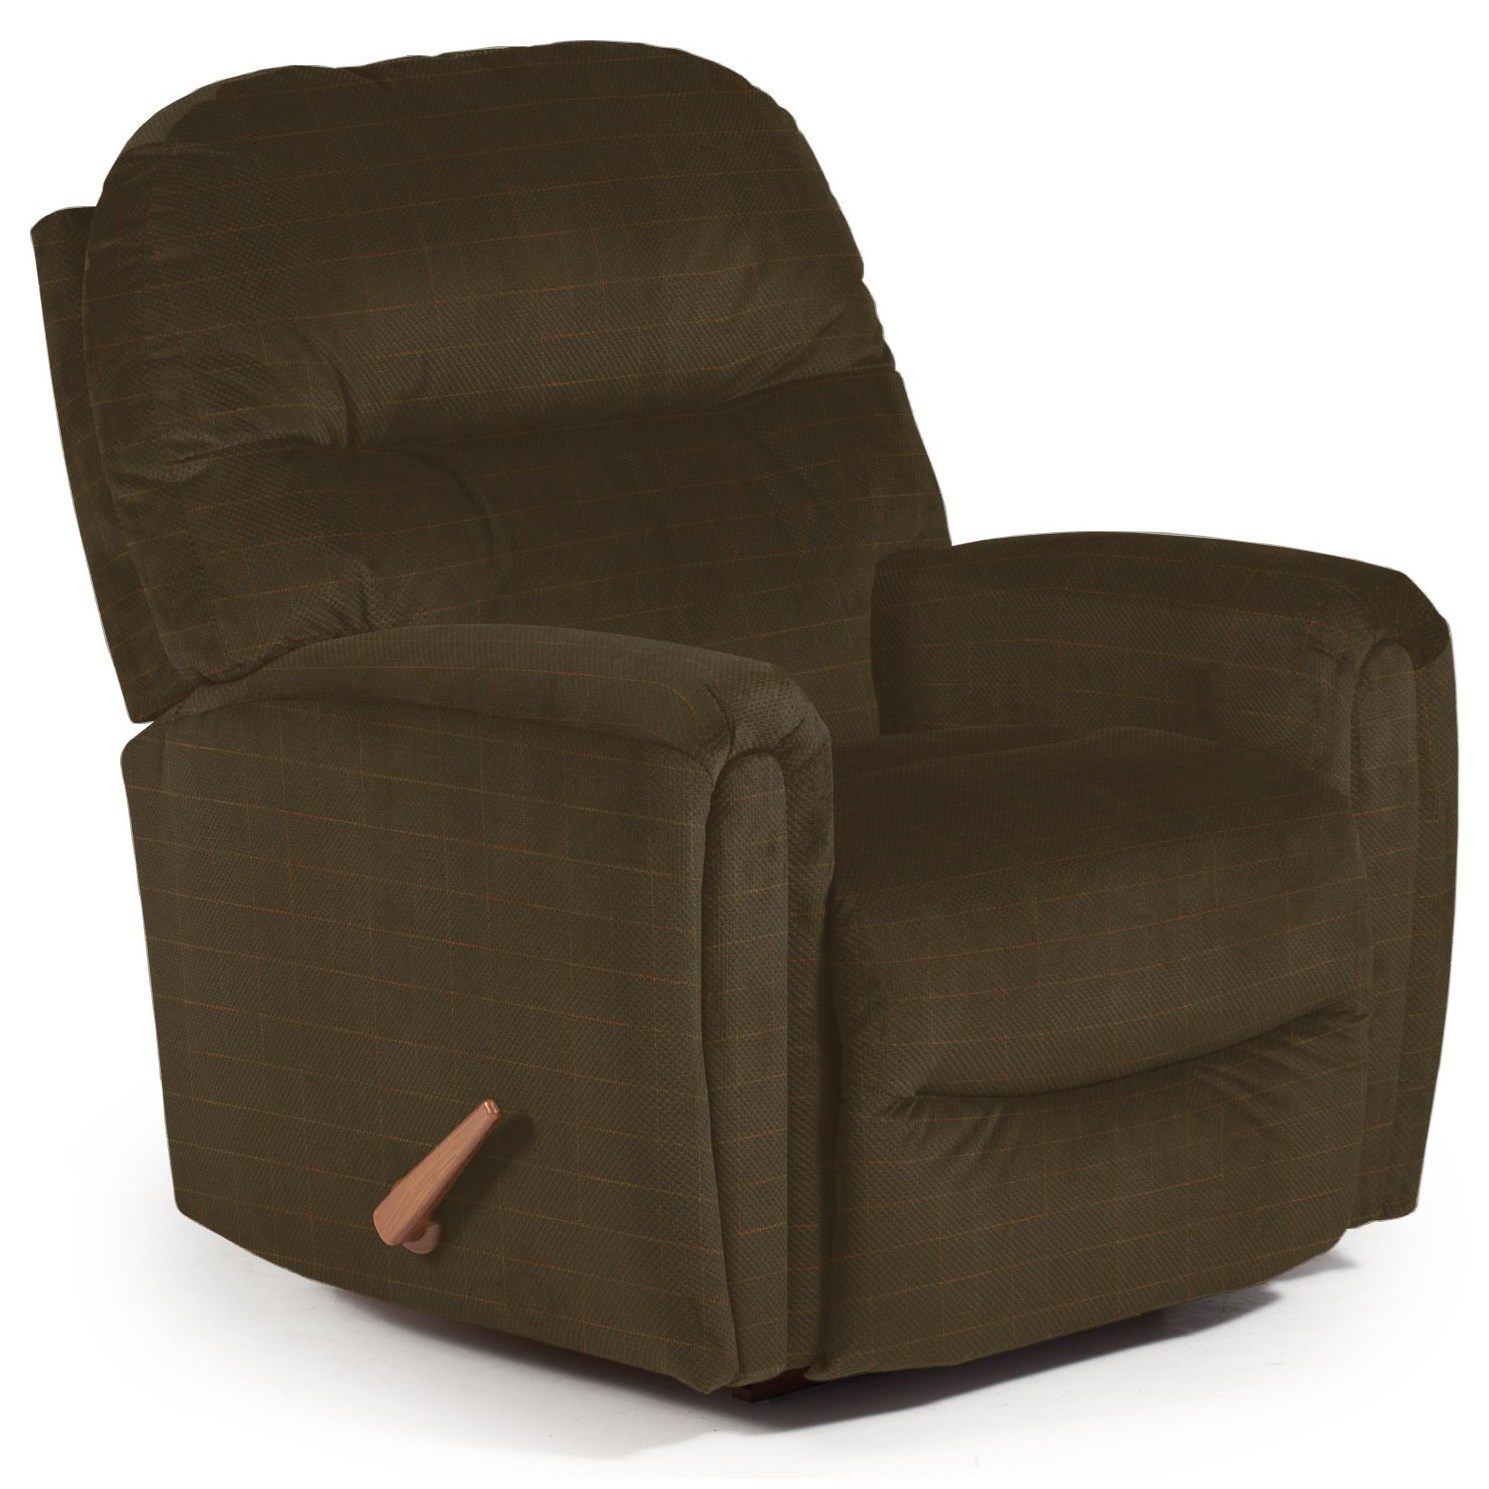 Best Home Furnishings Recliners - Medium Markson Space Saver Recliner - Item Number: 110599587-28936